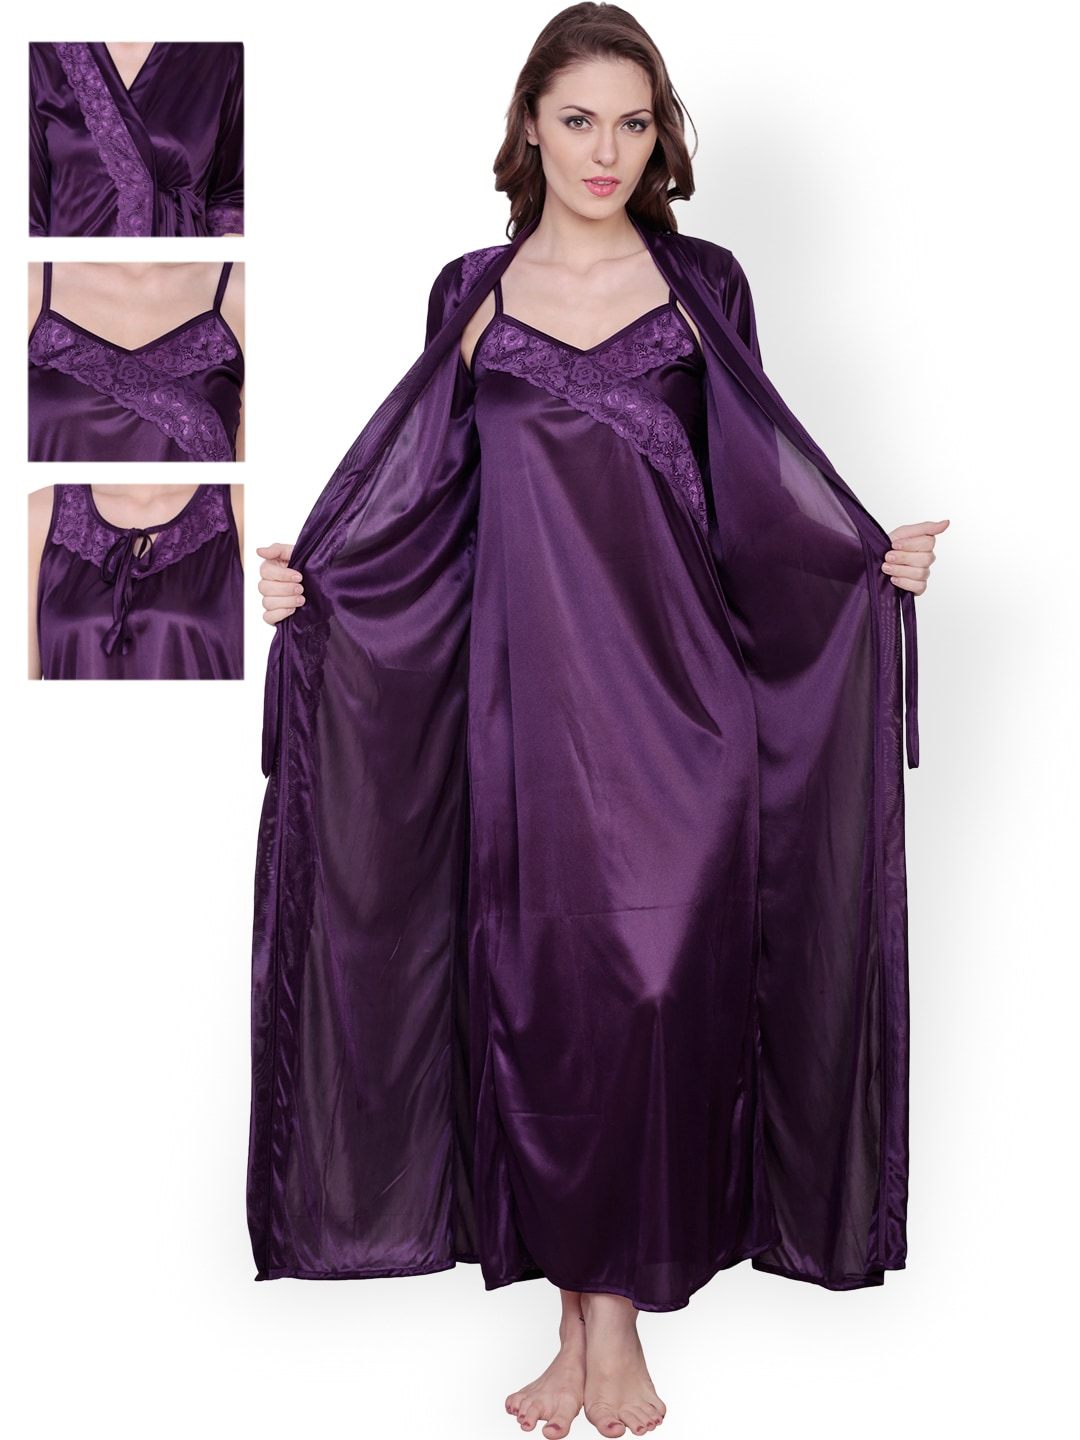 Women s Nightdress - Buy Nightdress for Women Online in India 369ee10a0